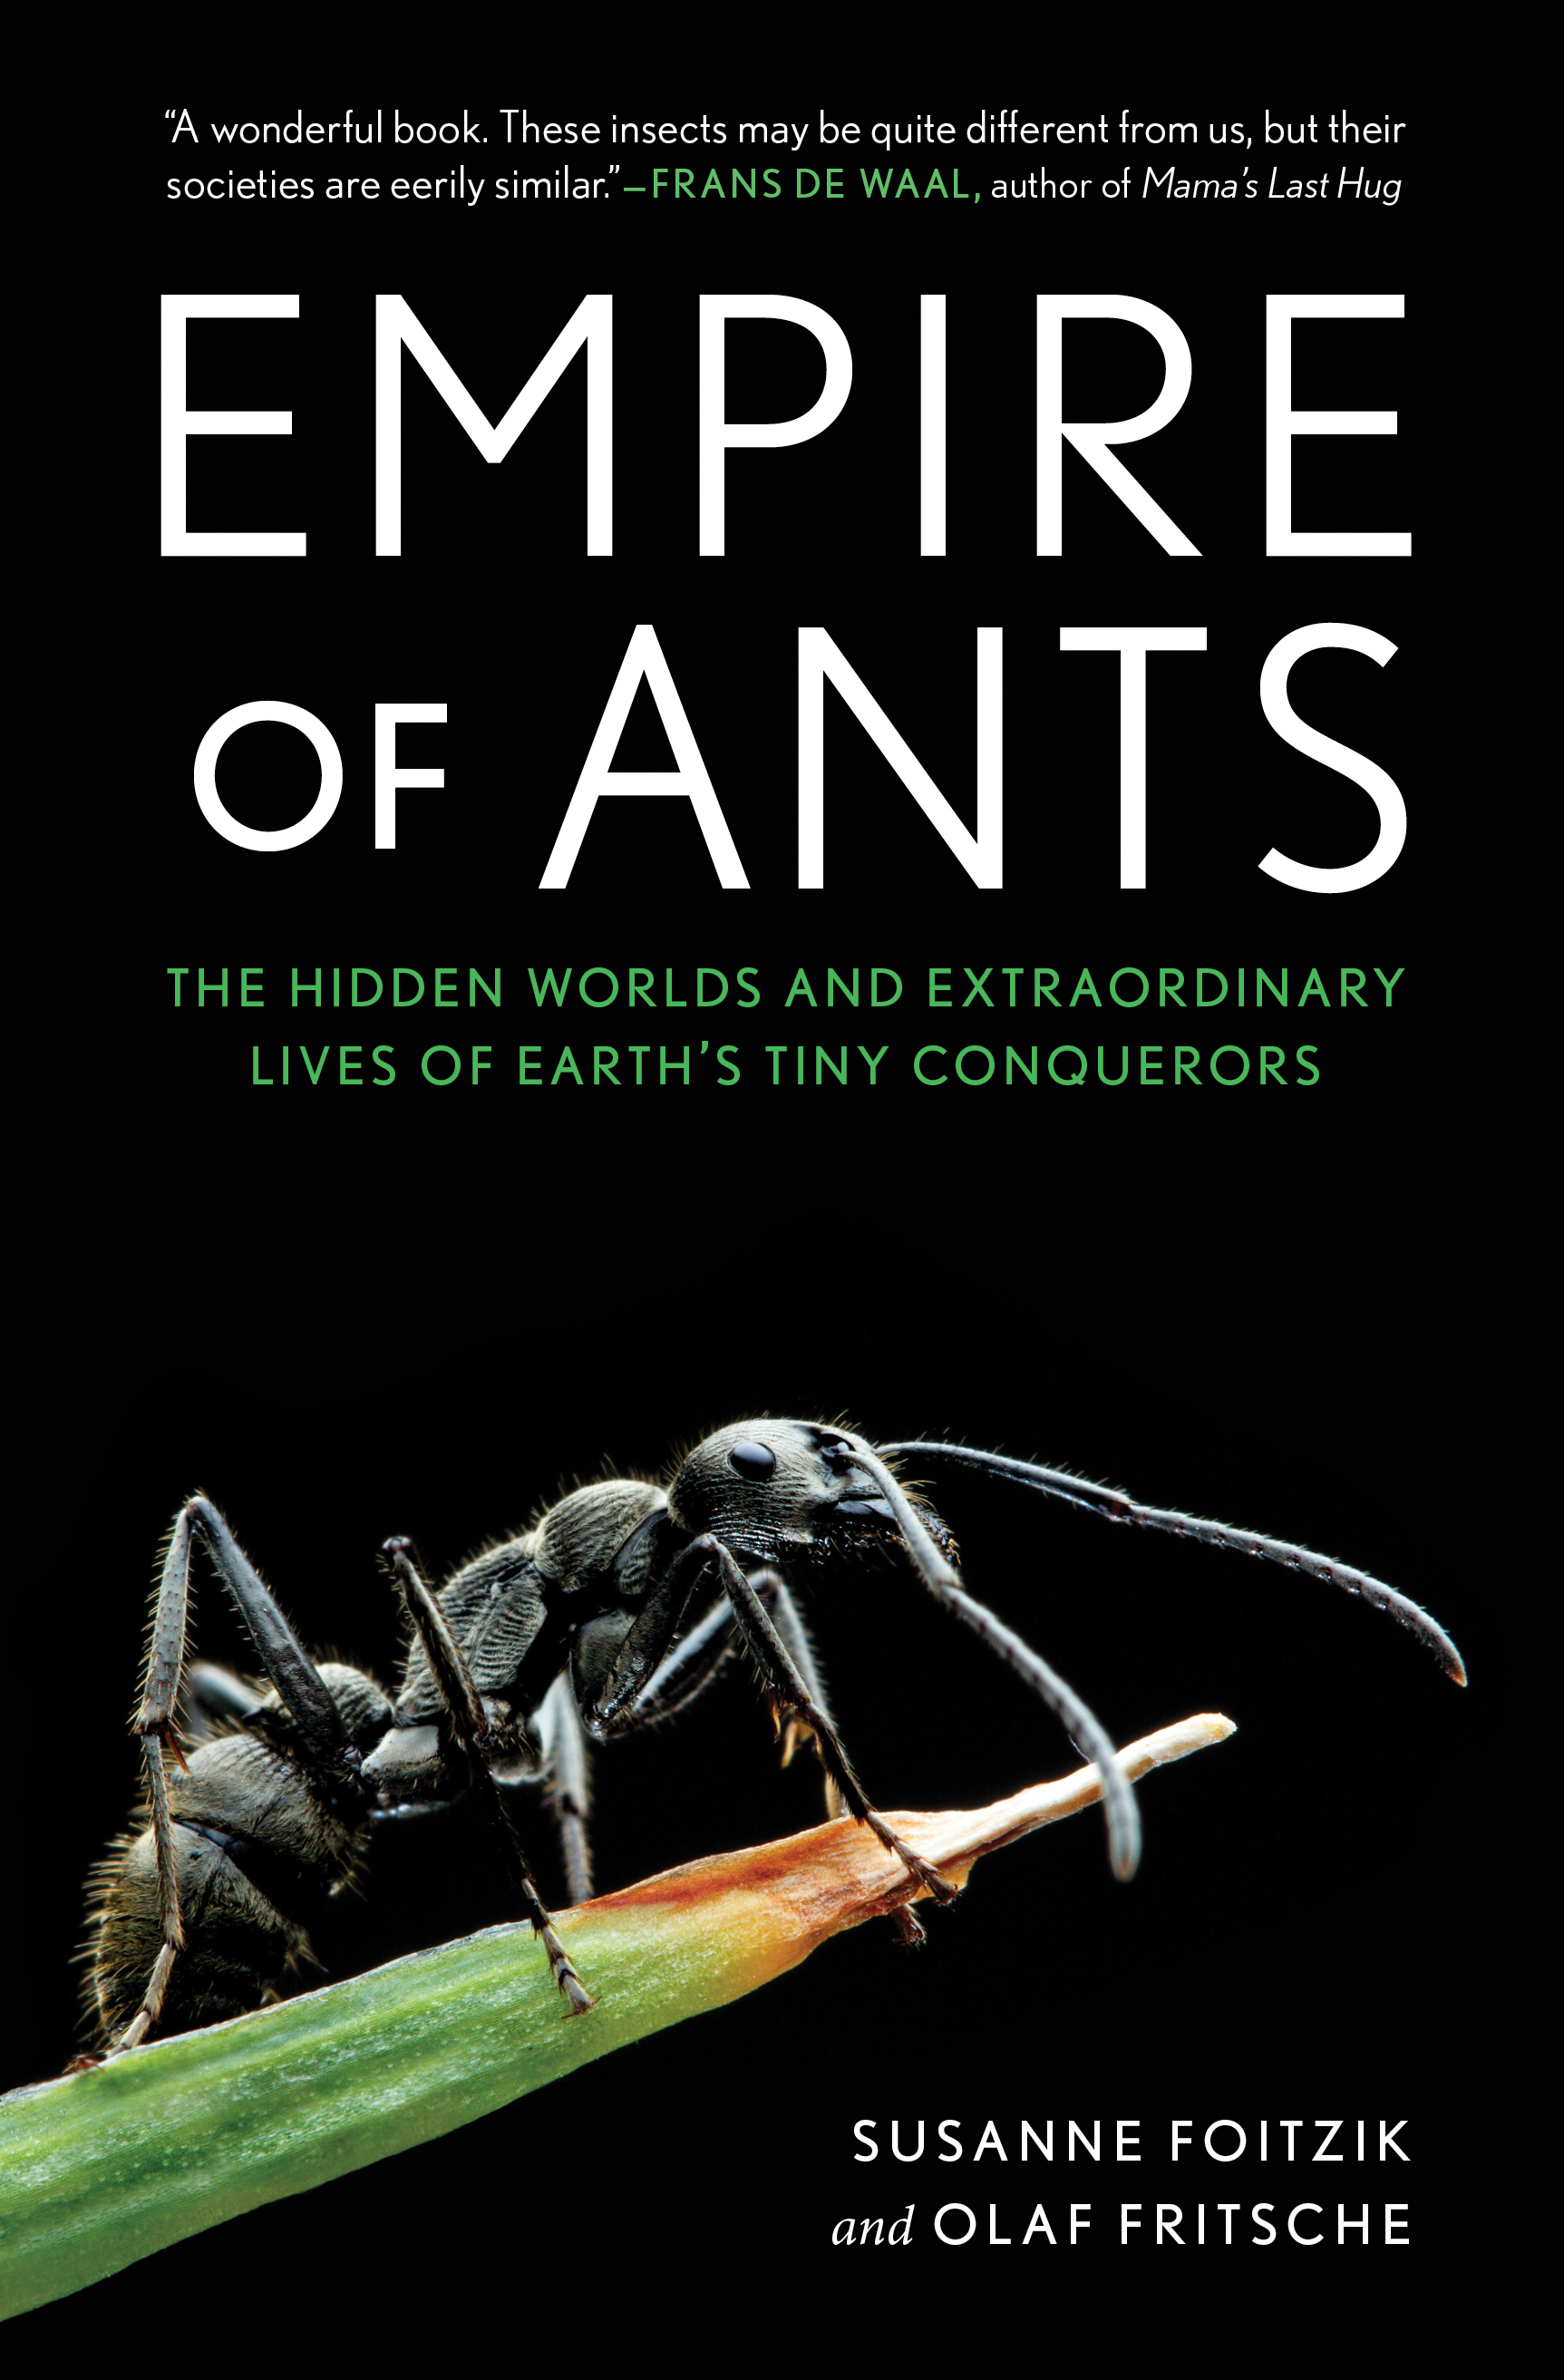 Empire of Ants